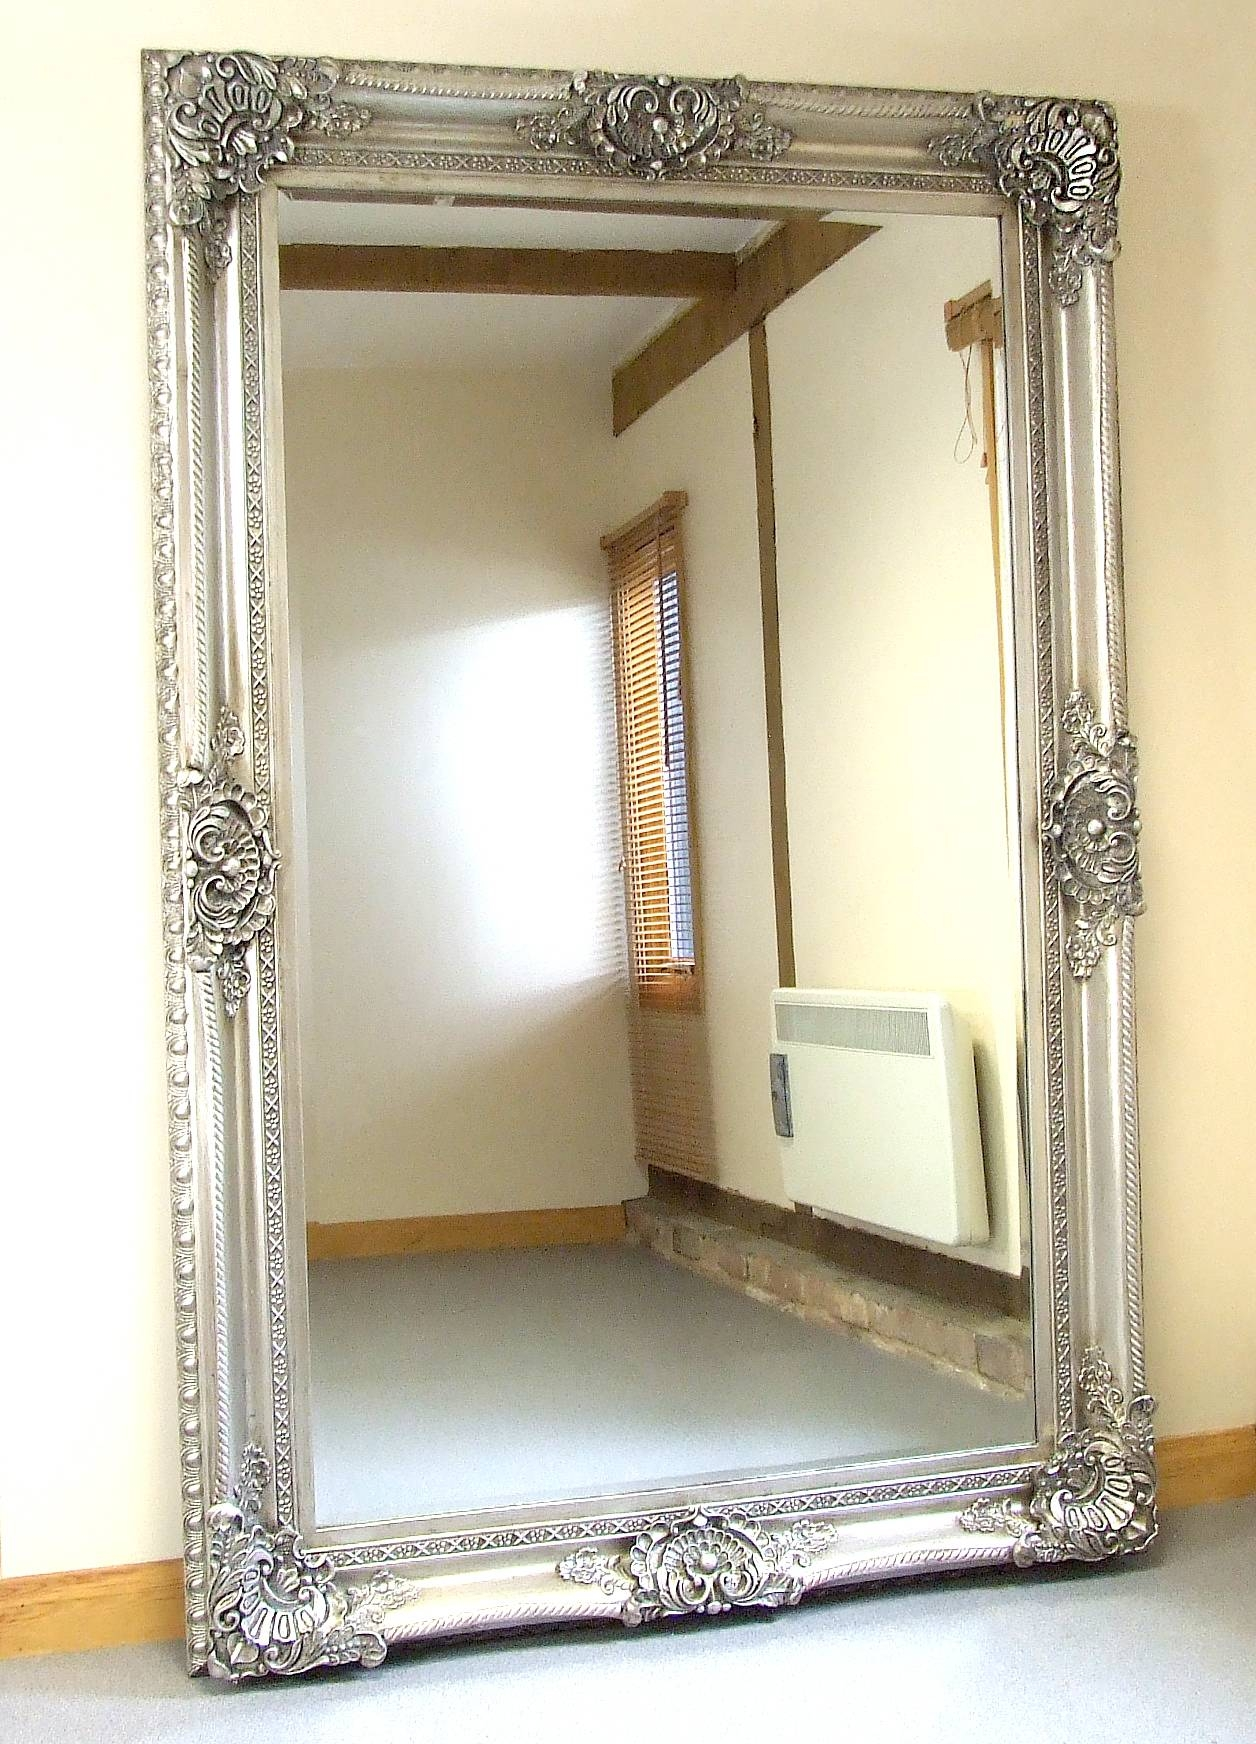 Decorating: Seville Ornate Extra Large French Full Length Wall regarding Ornate Leaner Mirrors (Image 6 of 15)